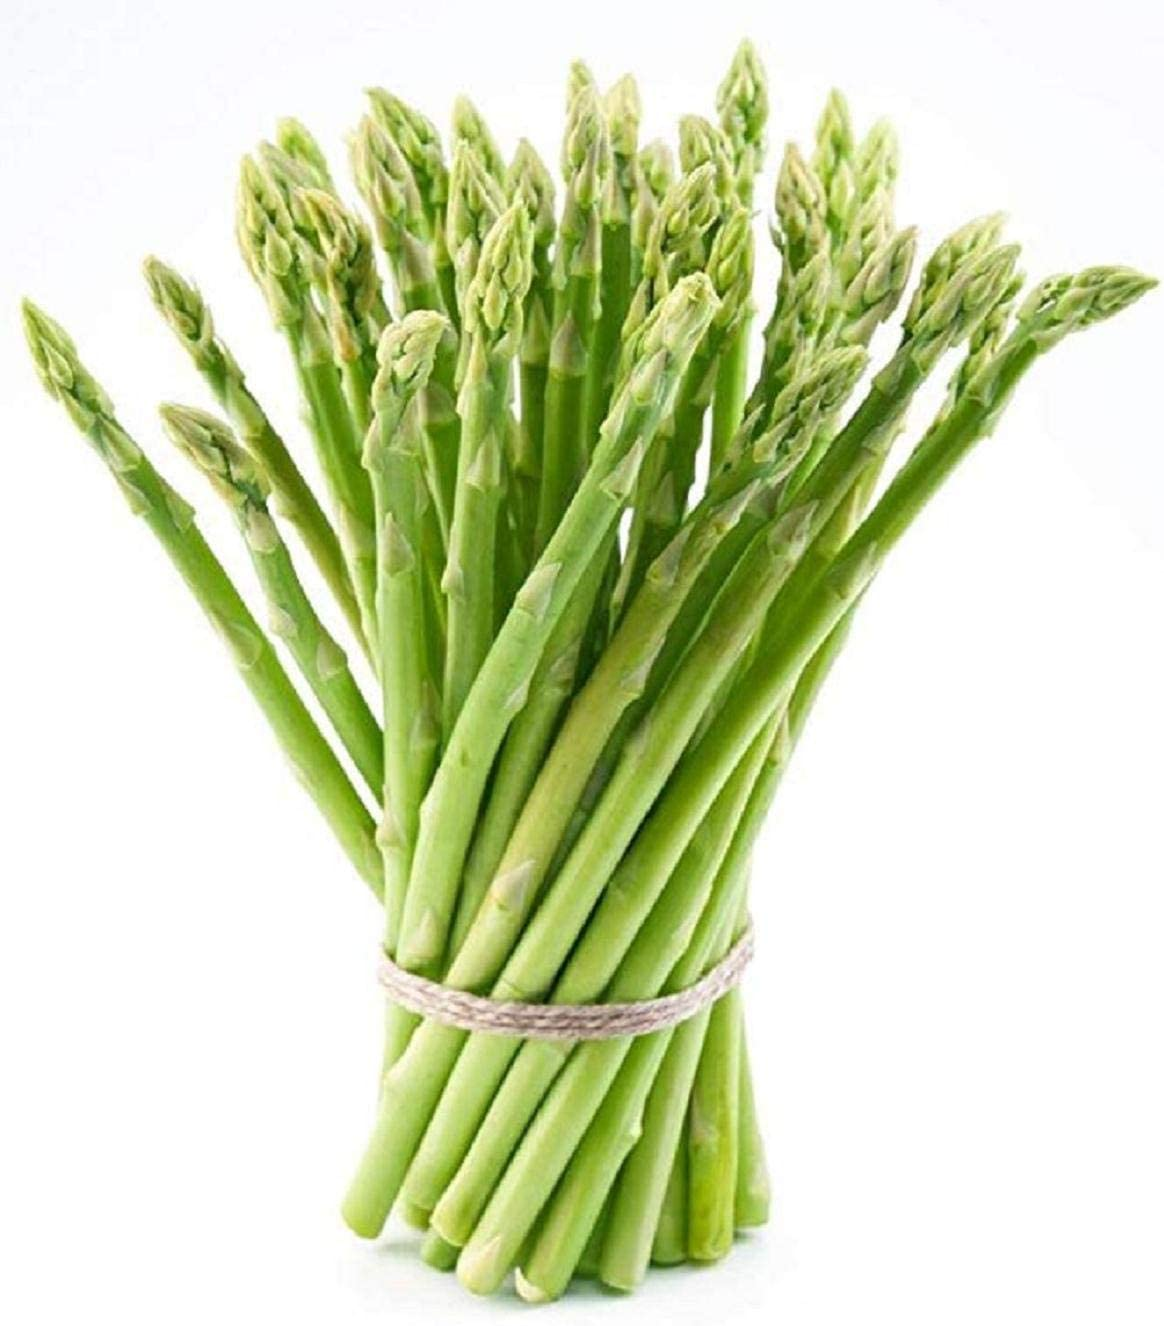 Amazon Com 10 Extra Large 2nd Year Green Asparagus Plants Roots With Asparagus Crowns Garden Outdoor